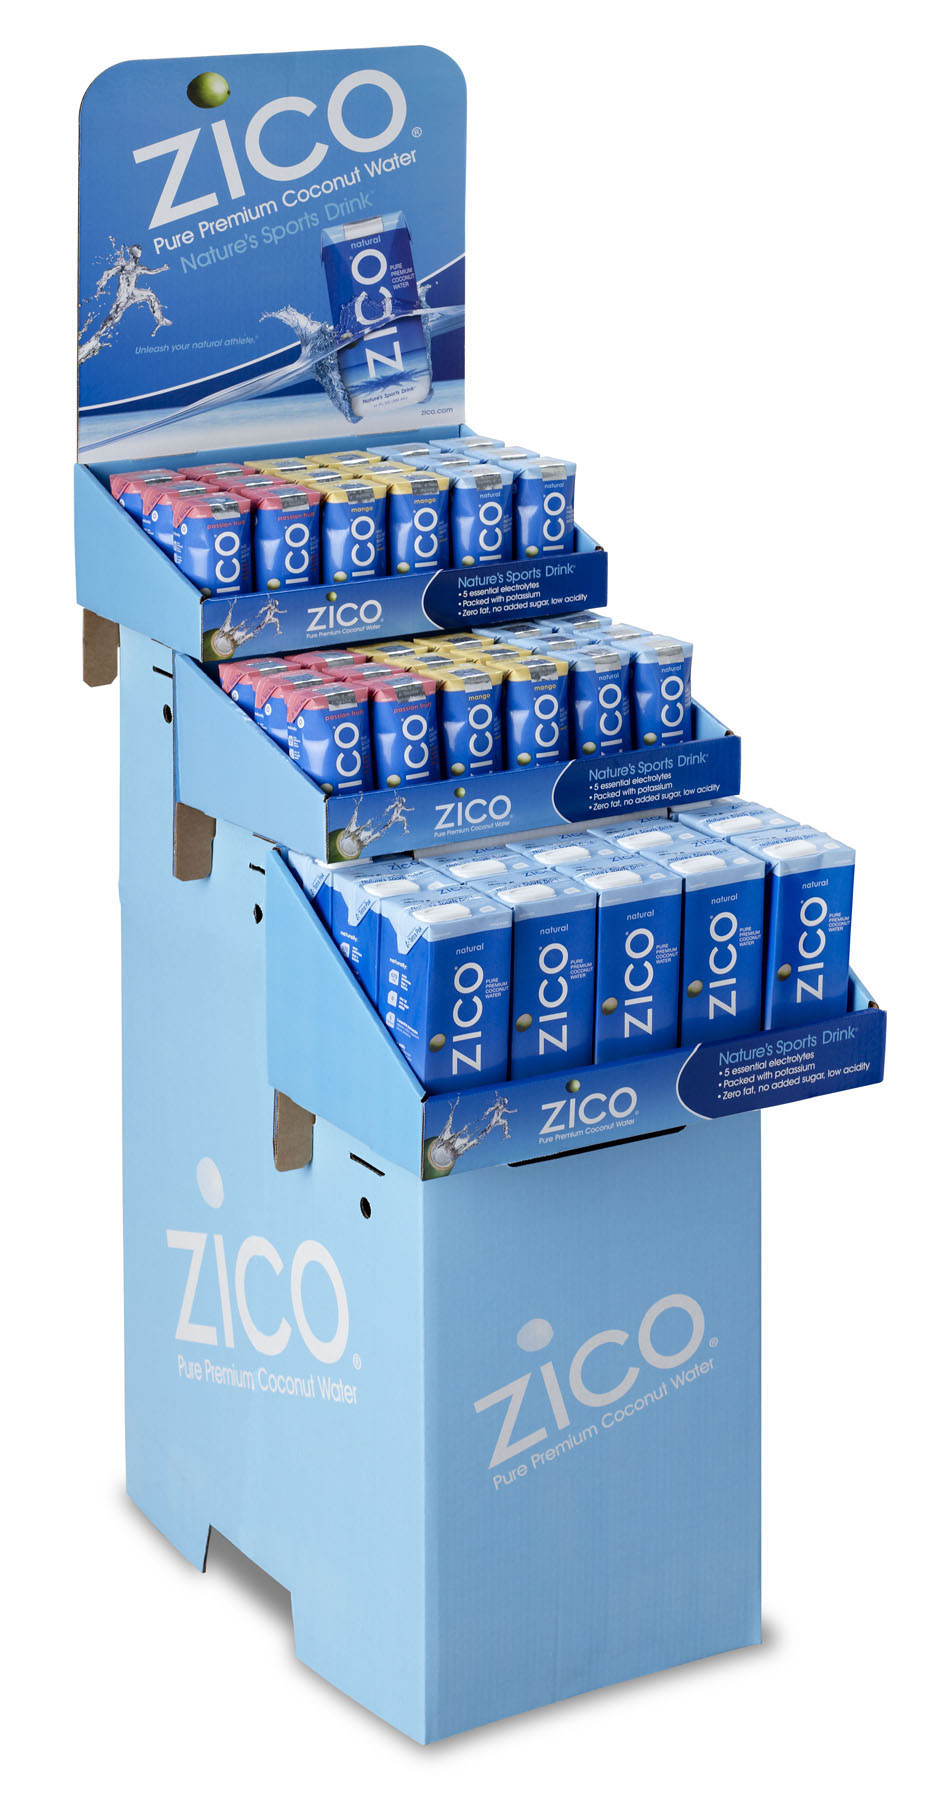 Zico Aisle Display.jpg